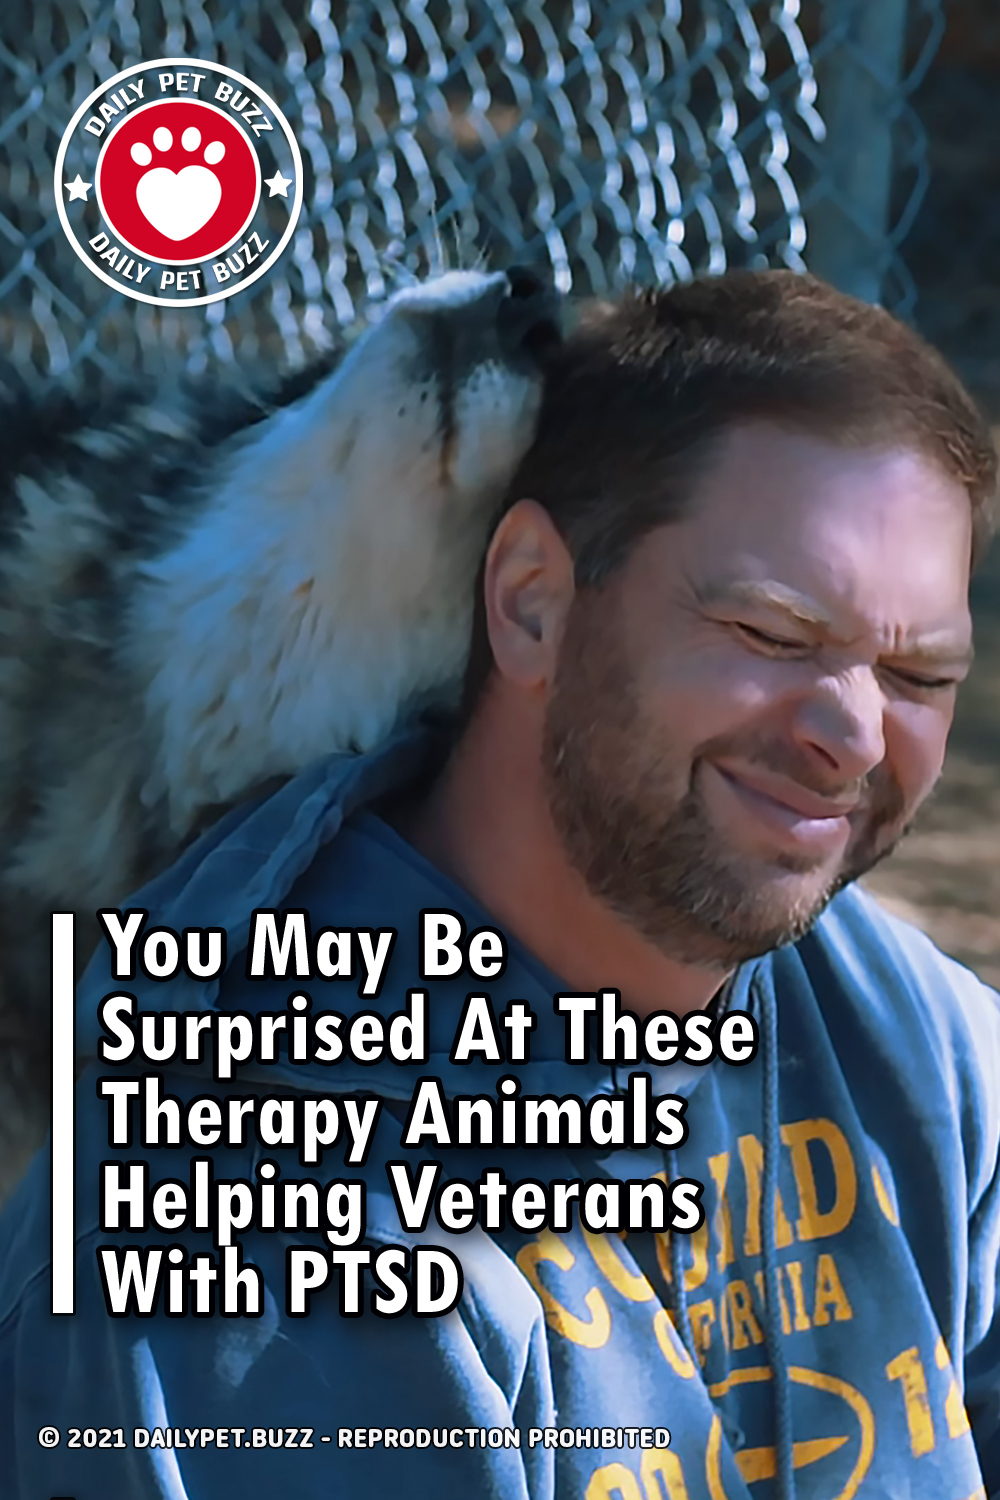 You May Be Surprised At These Therapy Animals Helping Veterans With PTSD